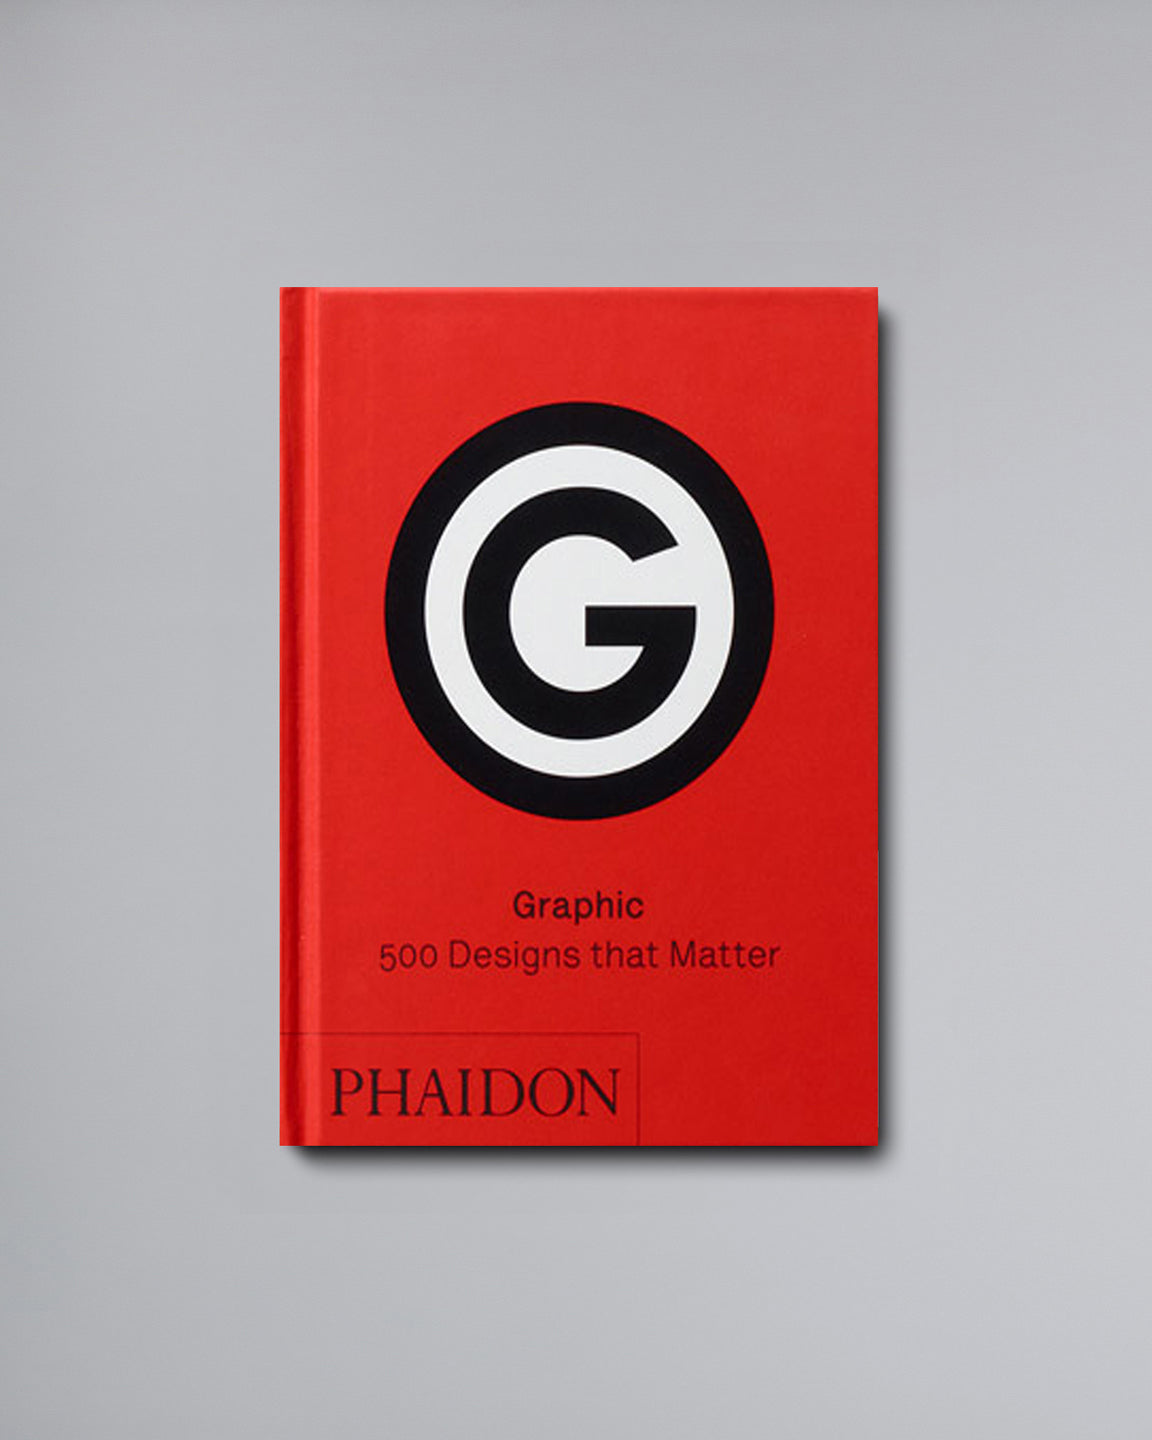 Graphic Design <br>500 Designs That Matter